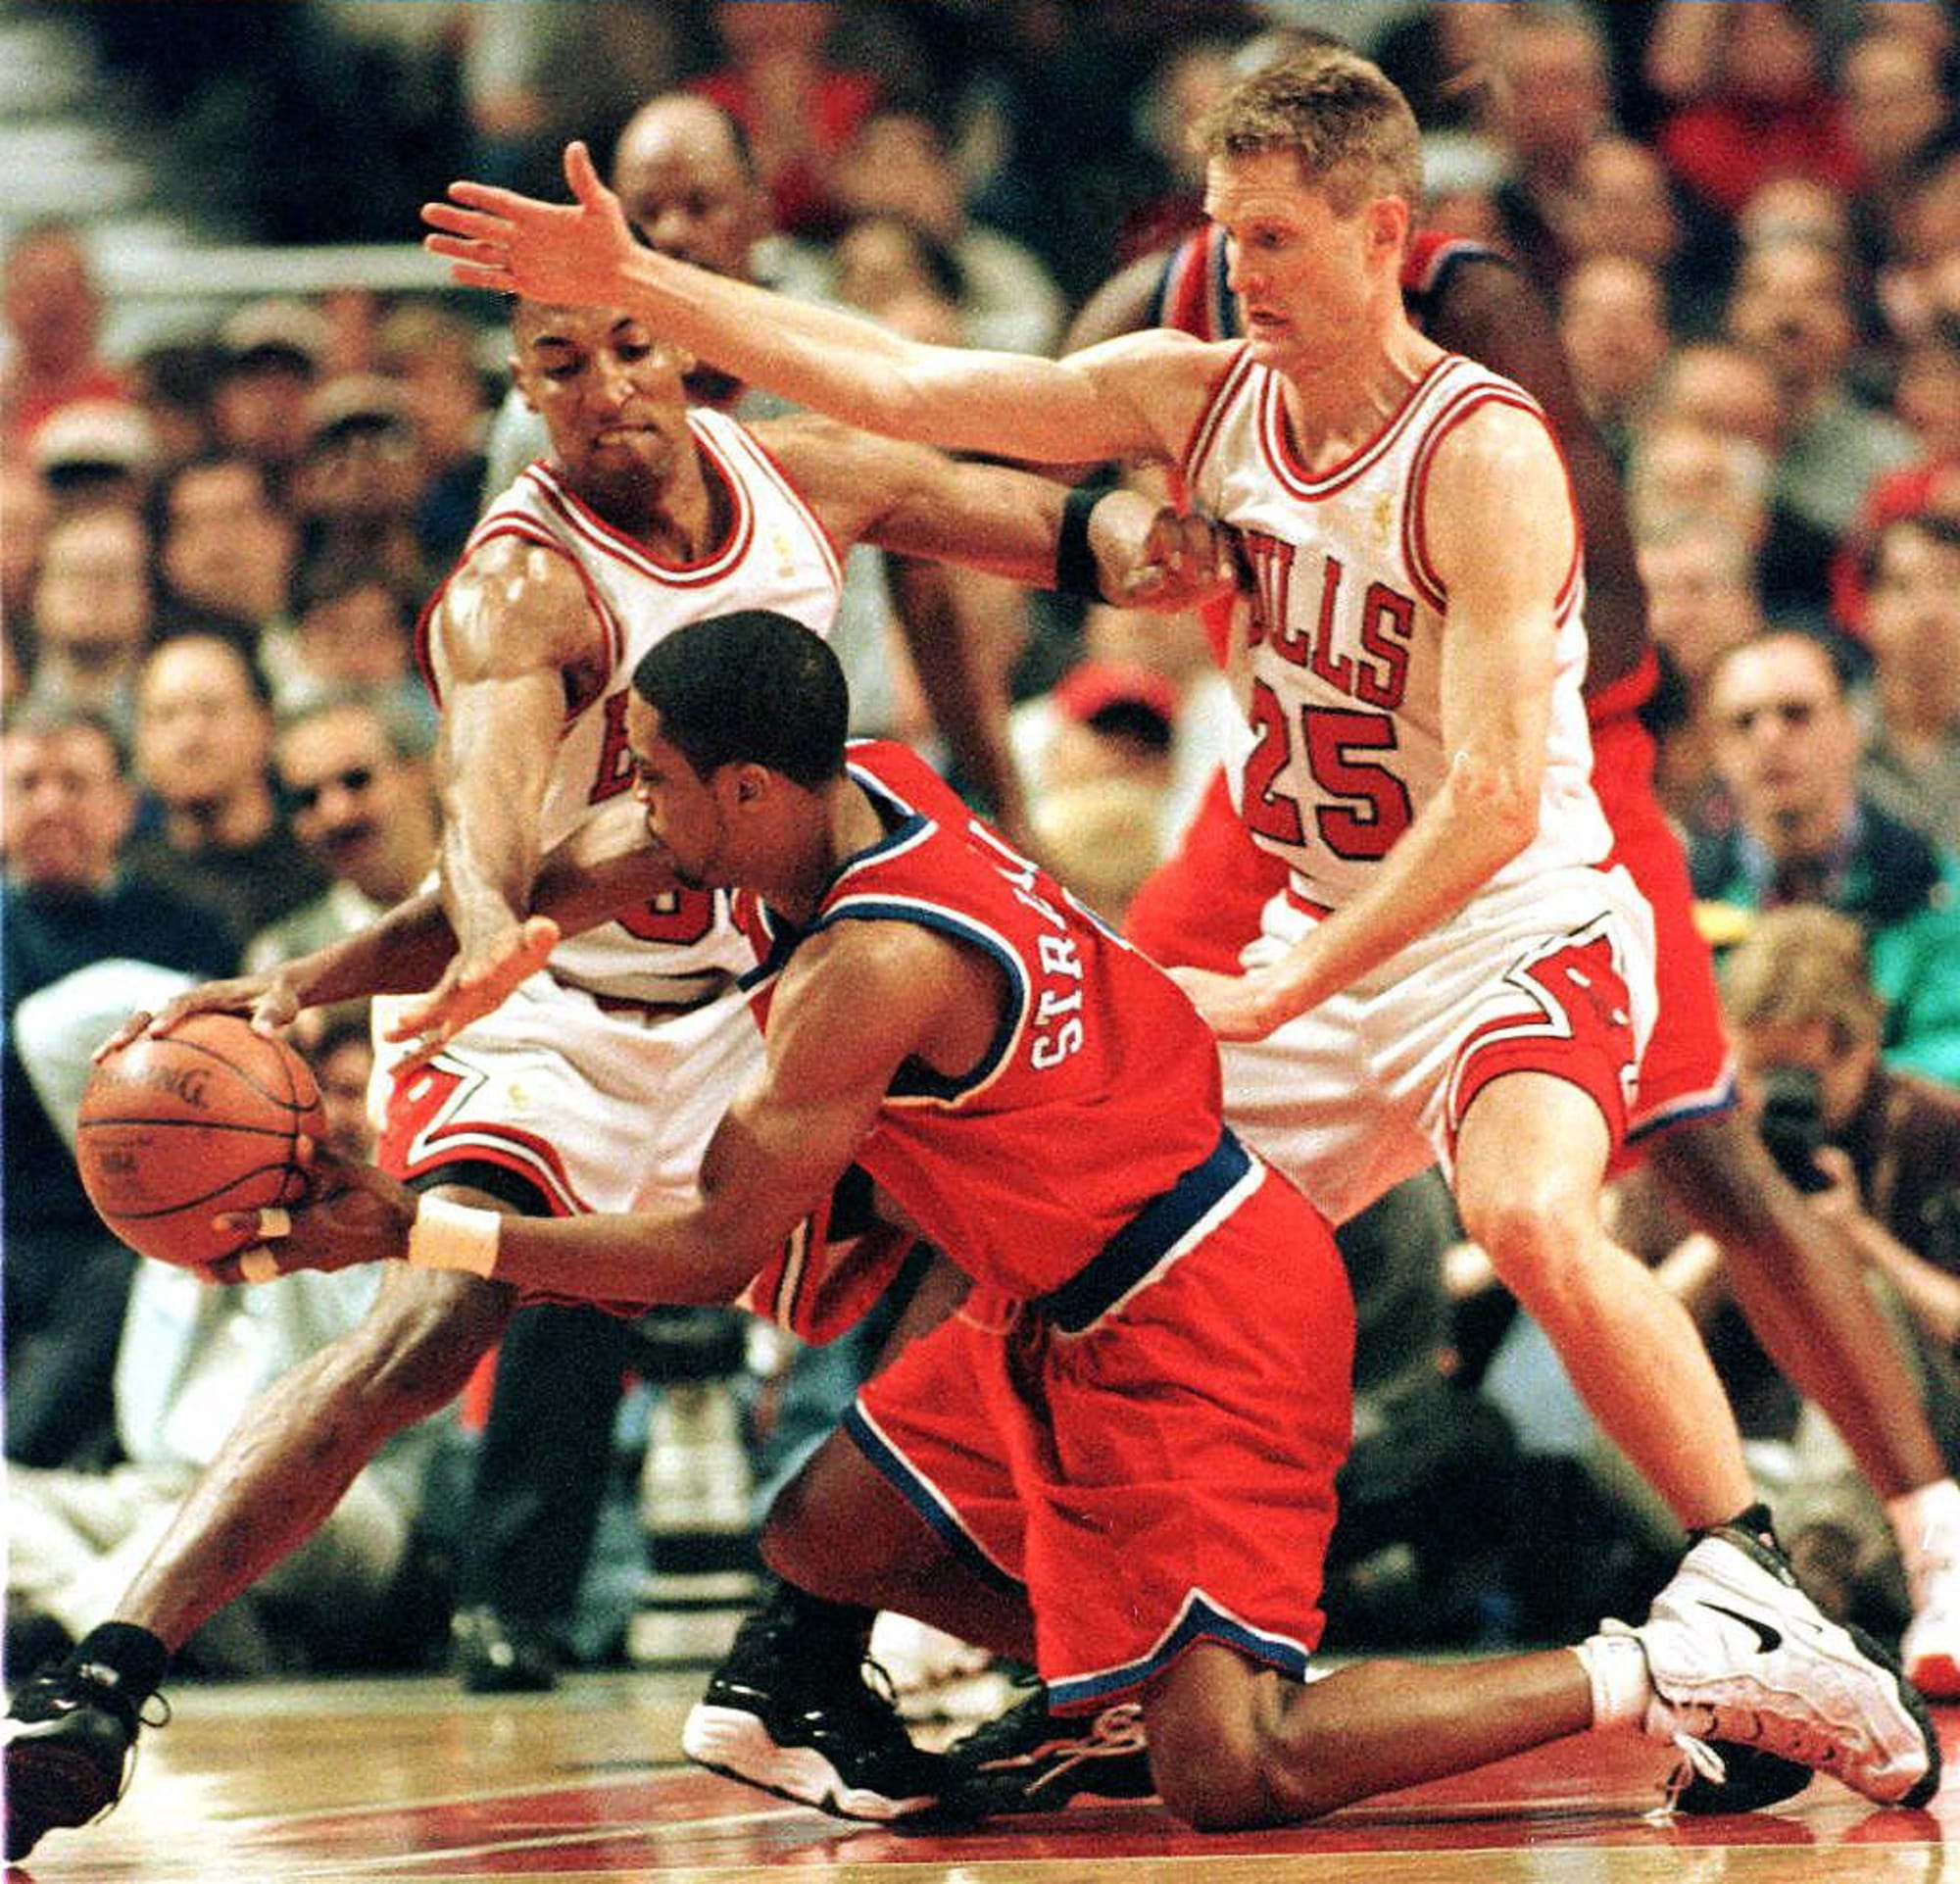 The Bulls Dynasty: What Impact did Steve Kerr and Jud Buechler have?